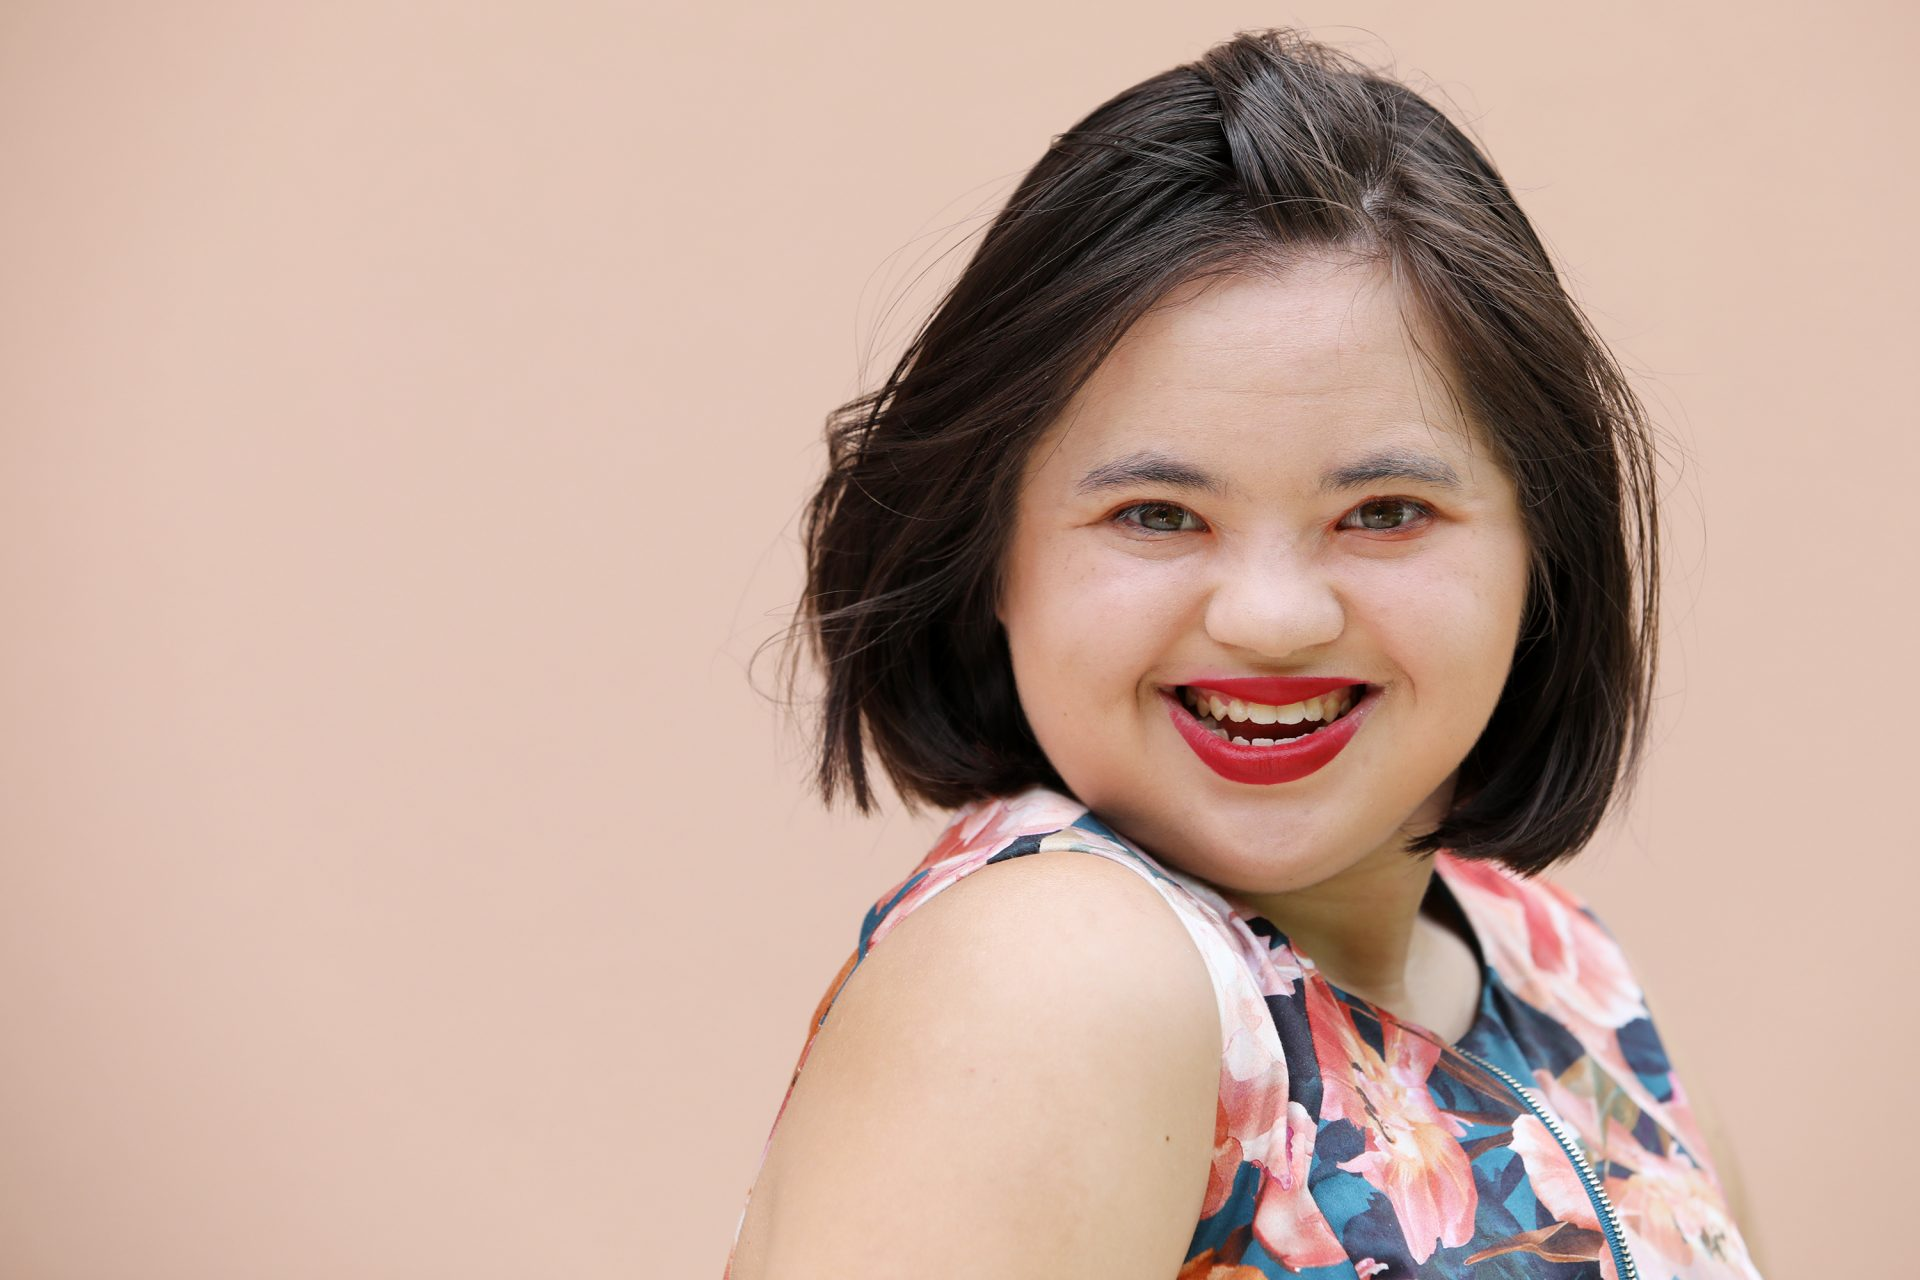 A young woman with Down syndrome who has short brown hair and red lipstick smiles at the camera.